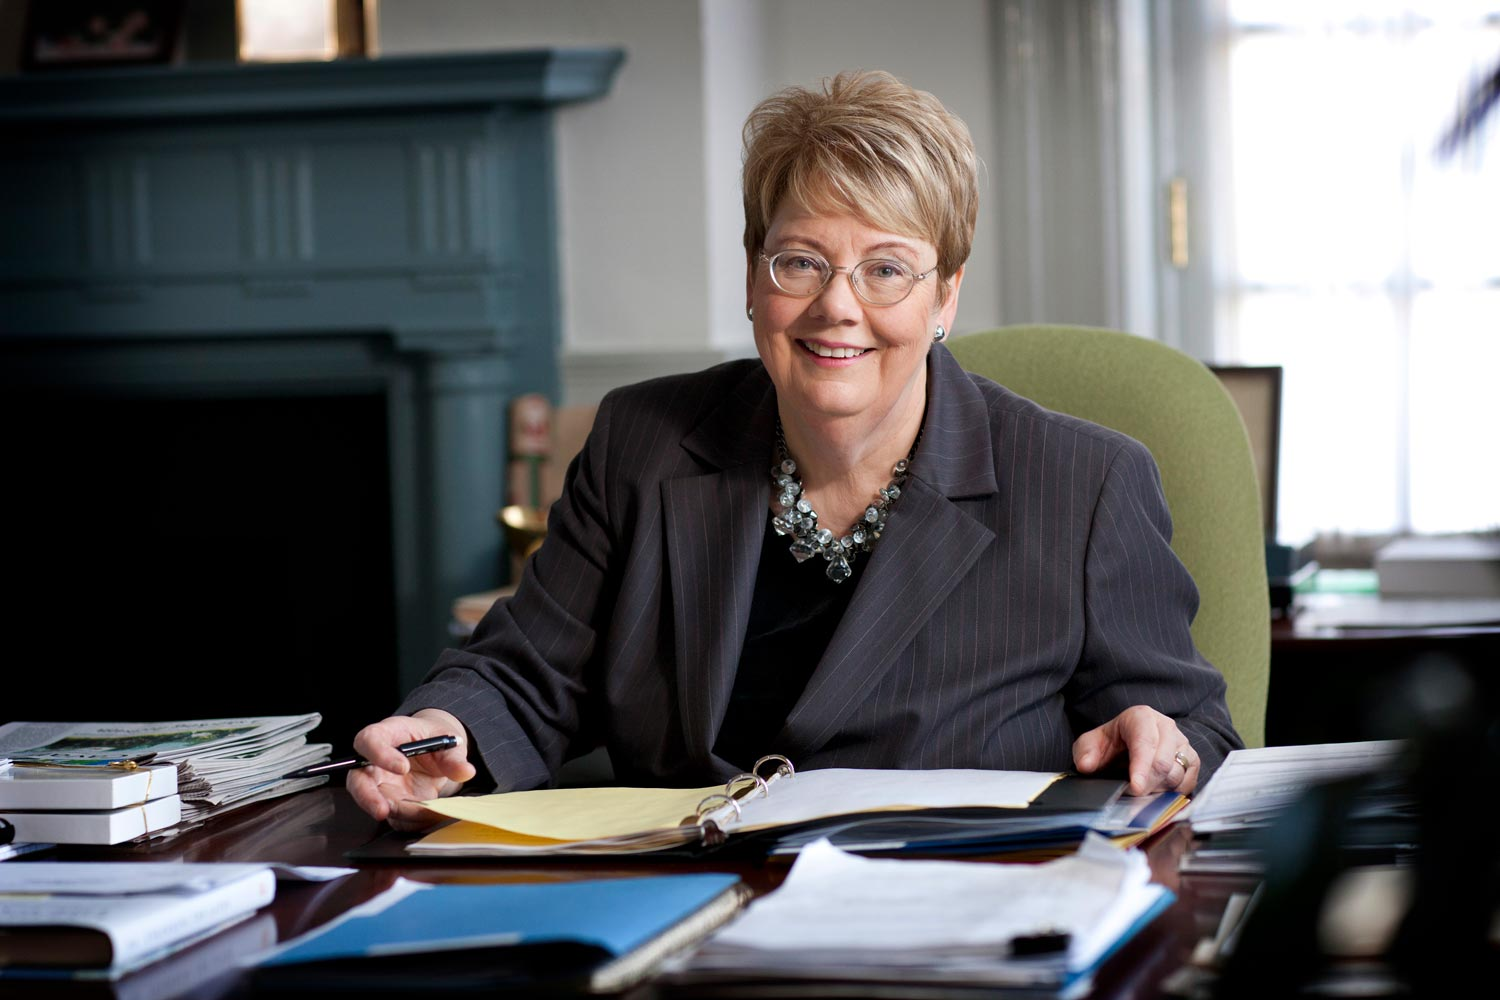 This is Sullivan's second presidential commission. In 2013, she appointed the President's Commission on Slavery and the University to explore UVA's historical relationship to slavery and its legacies.